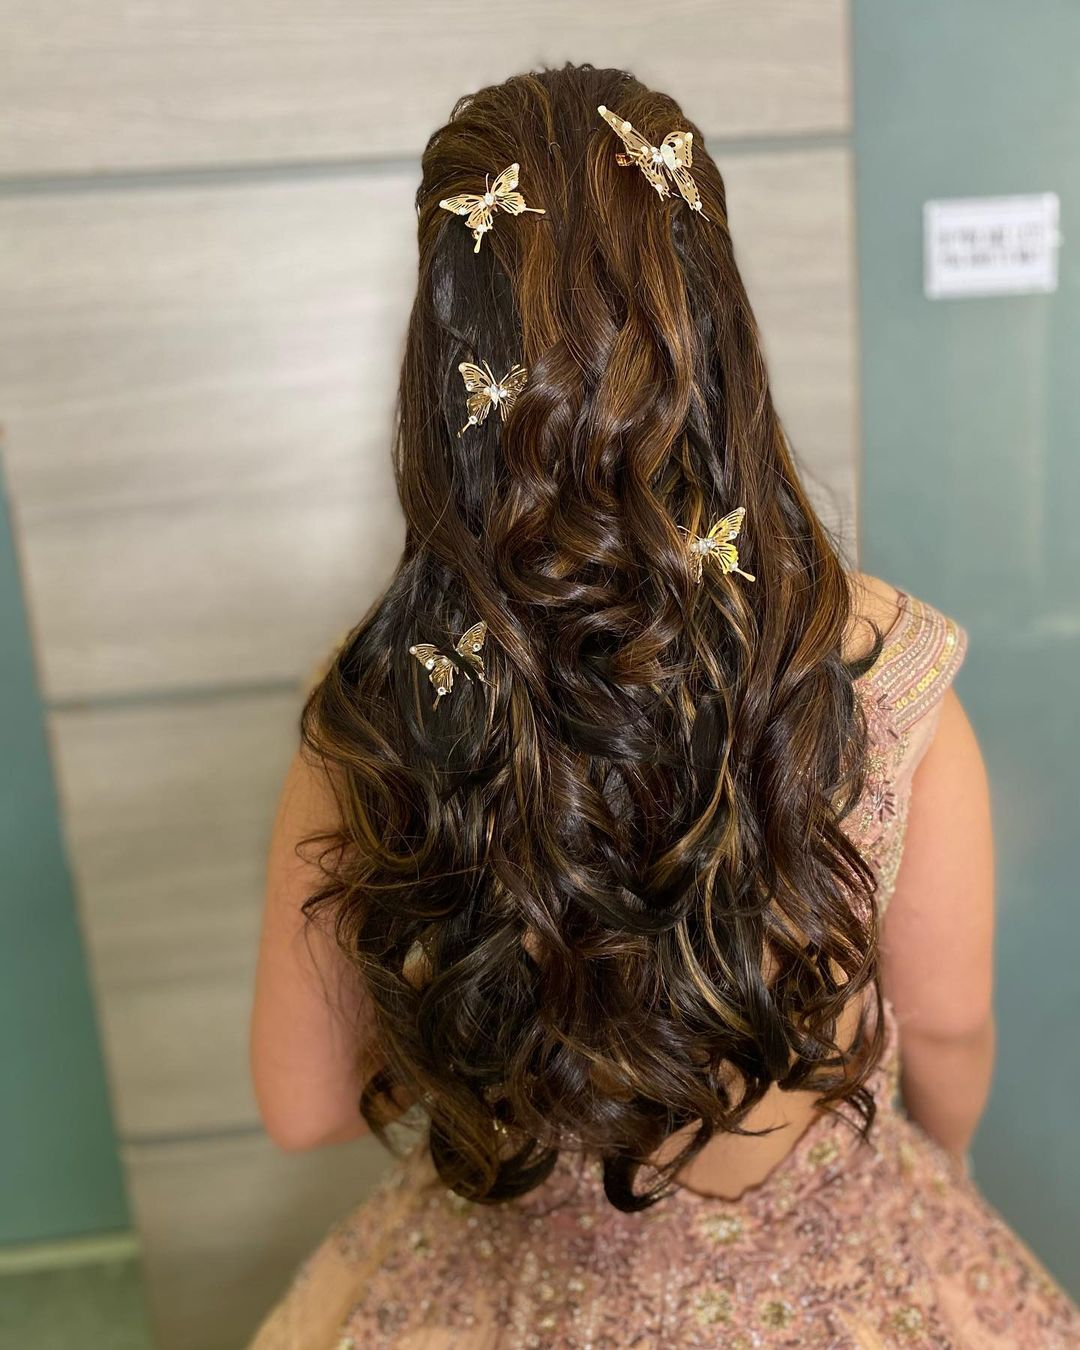 open hairstyle with butterfly accessories